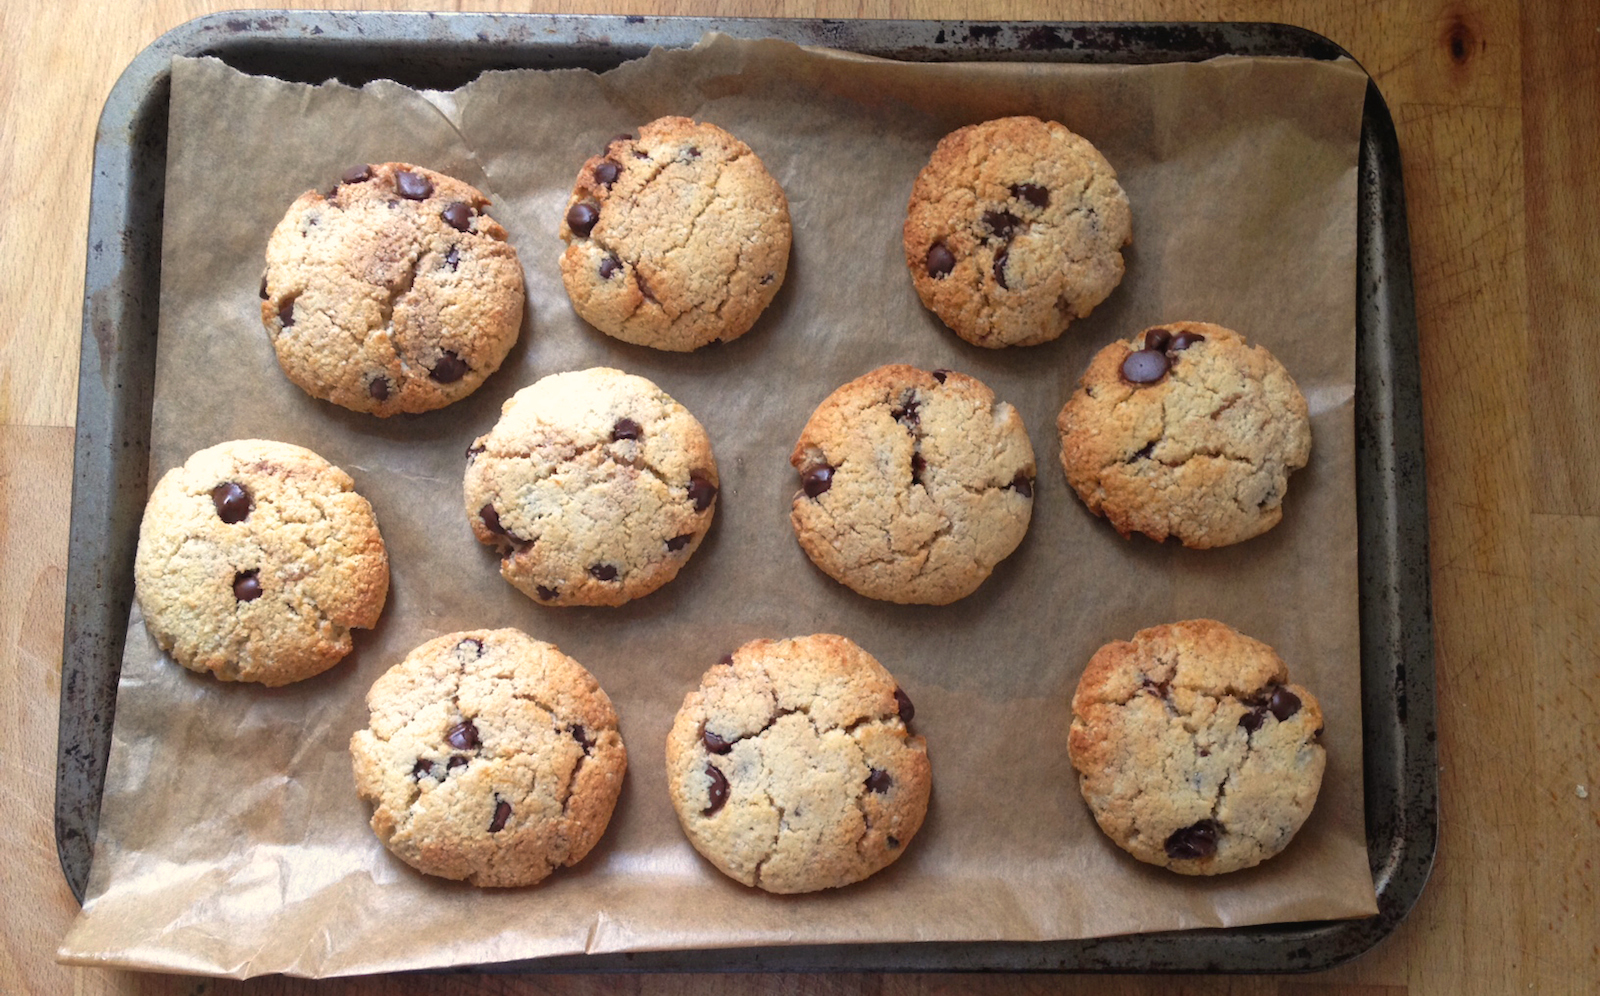 The end result almond healthy cookies